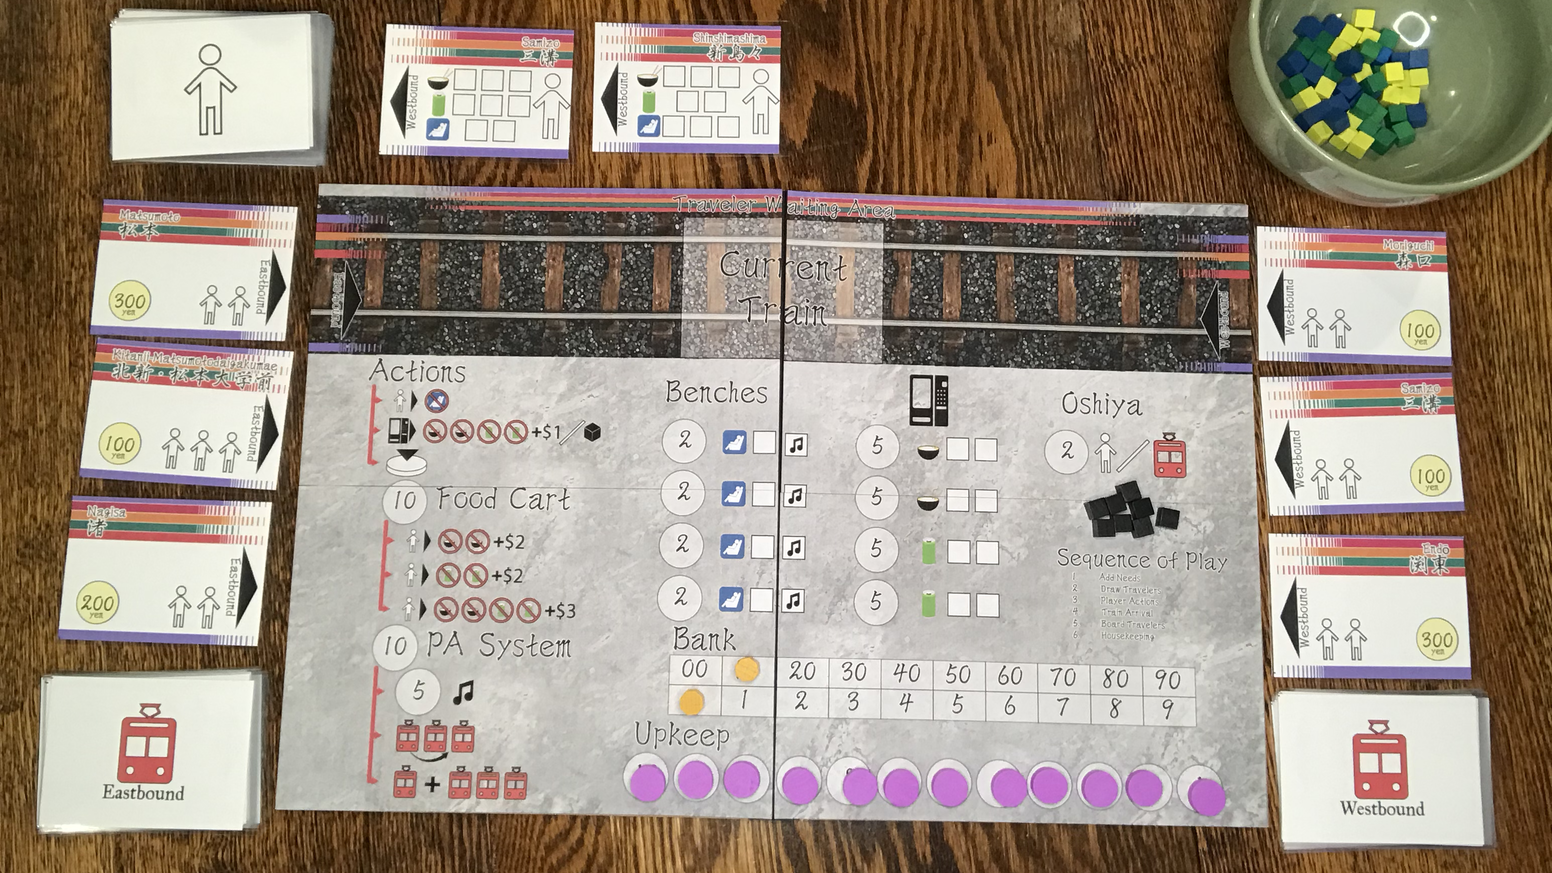 A screen printed board game about running a small train station.